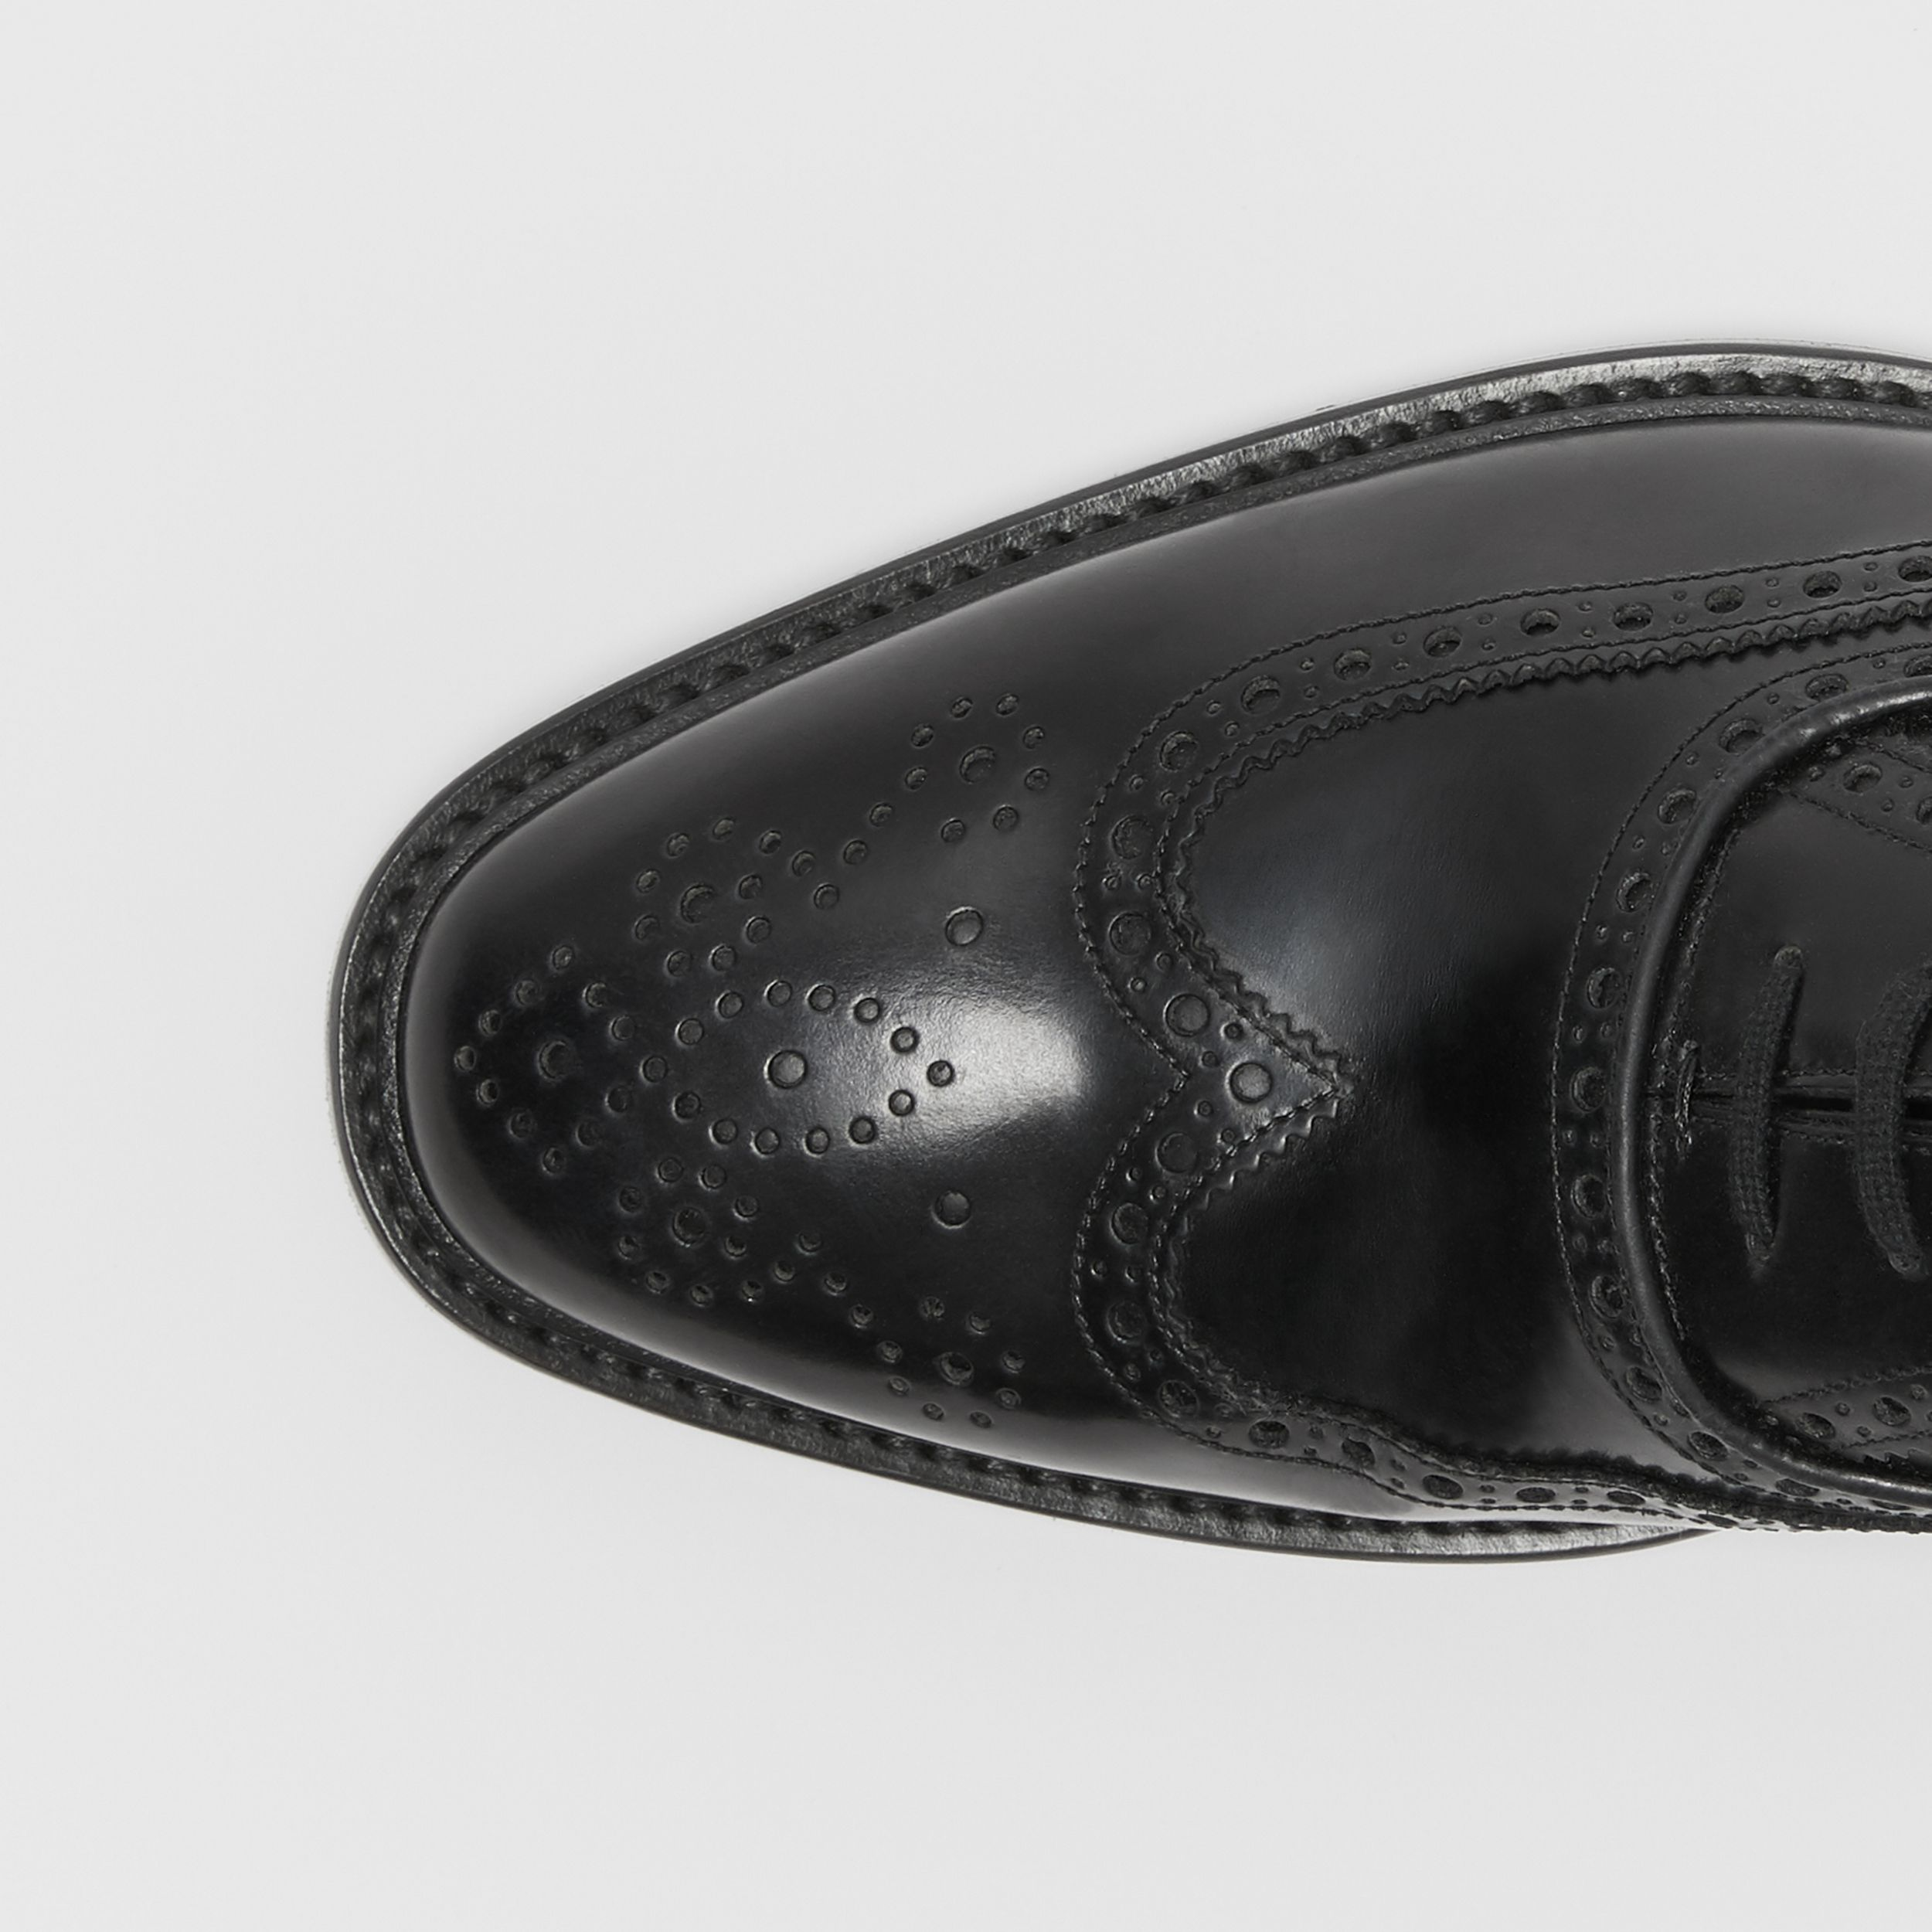 Leather Oxford Brogues in Black - Men | Burberry Australia - 2